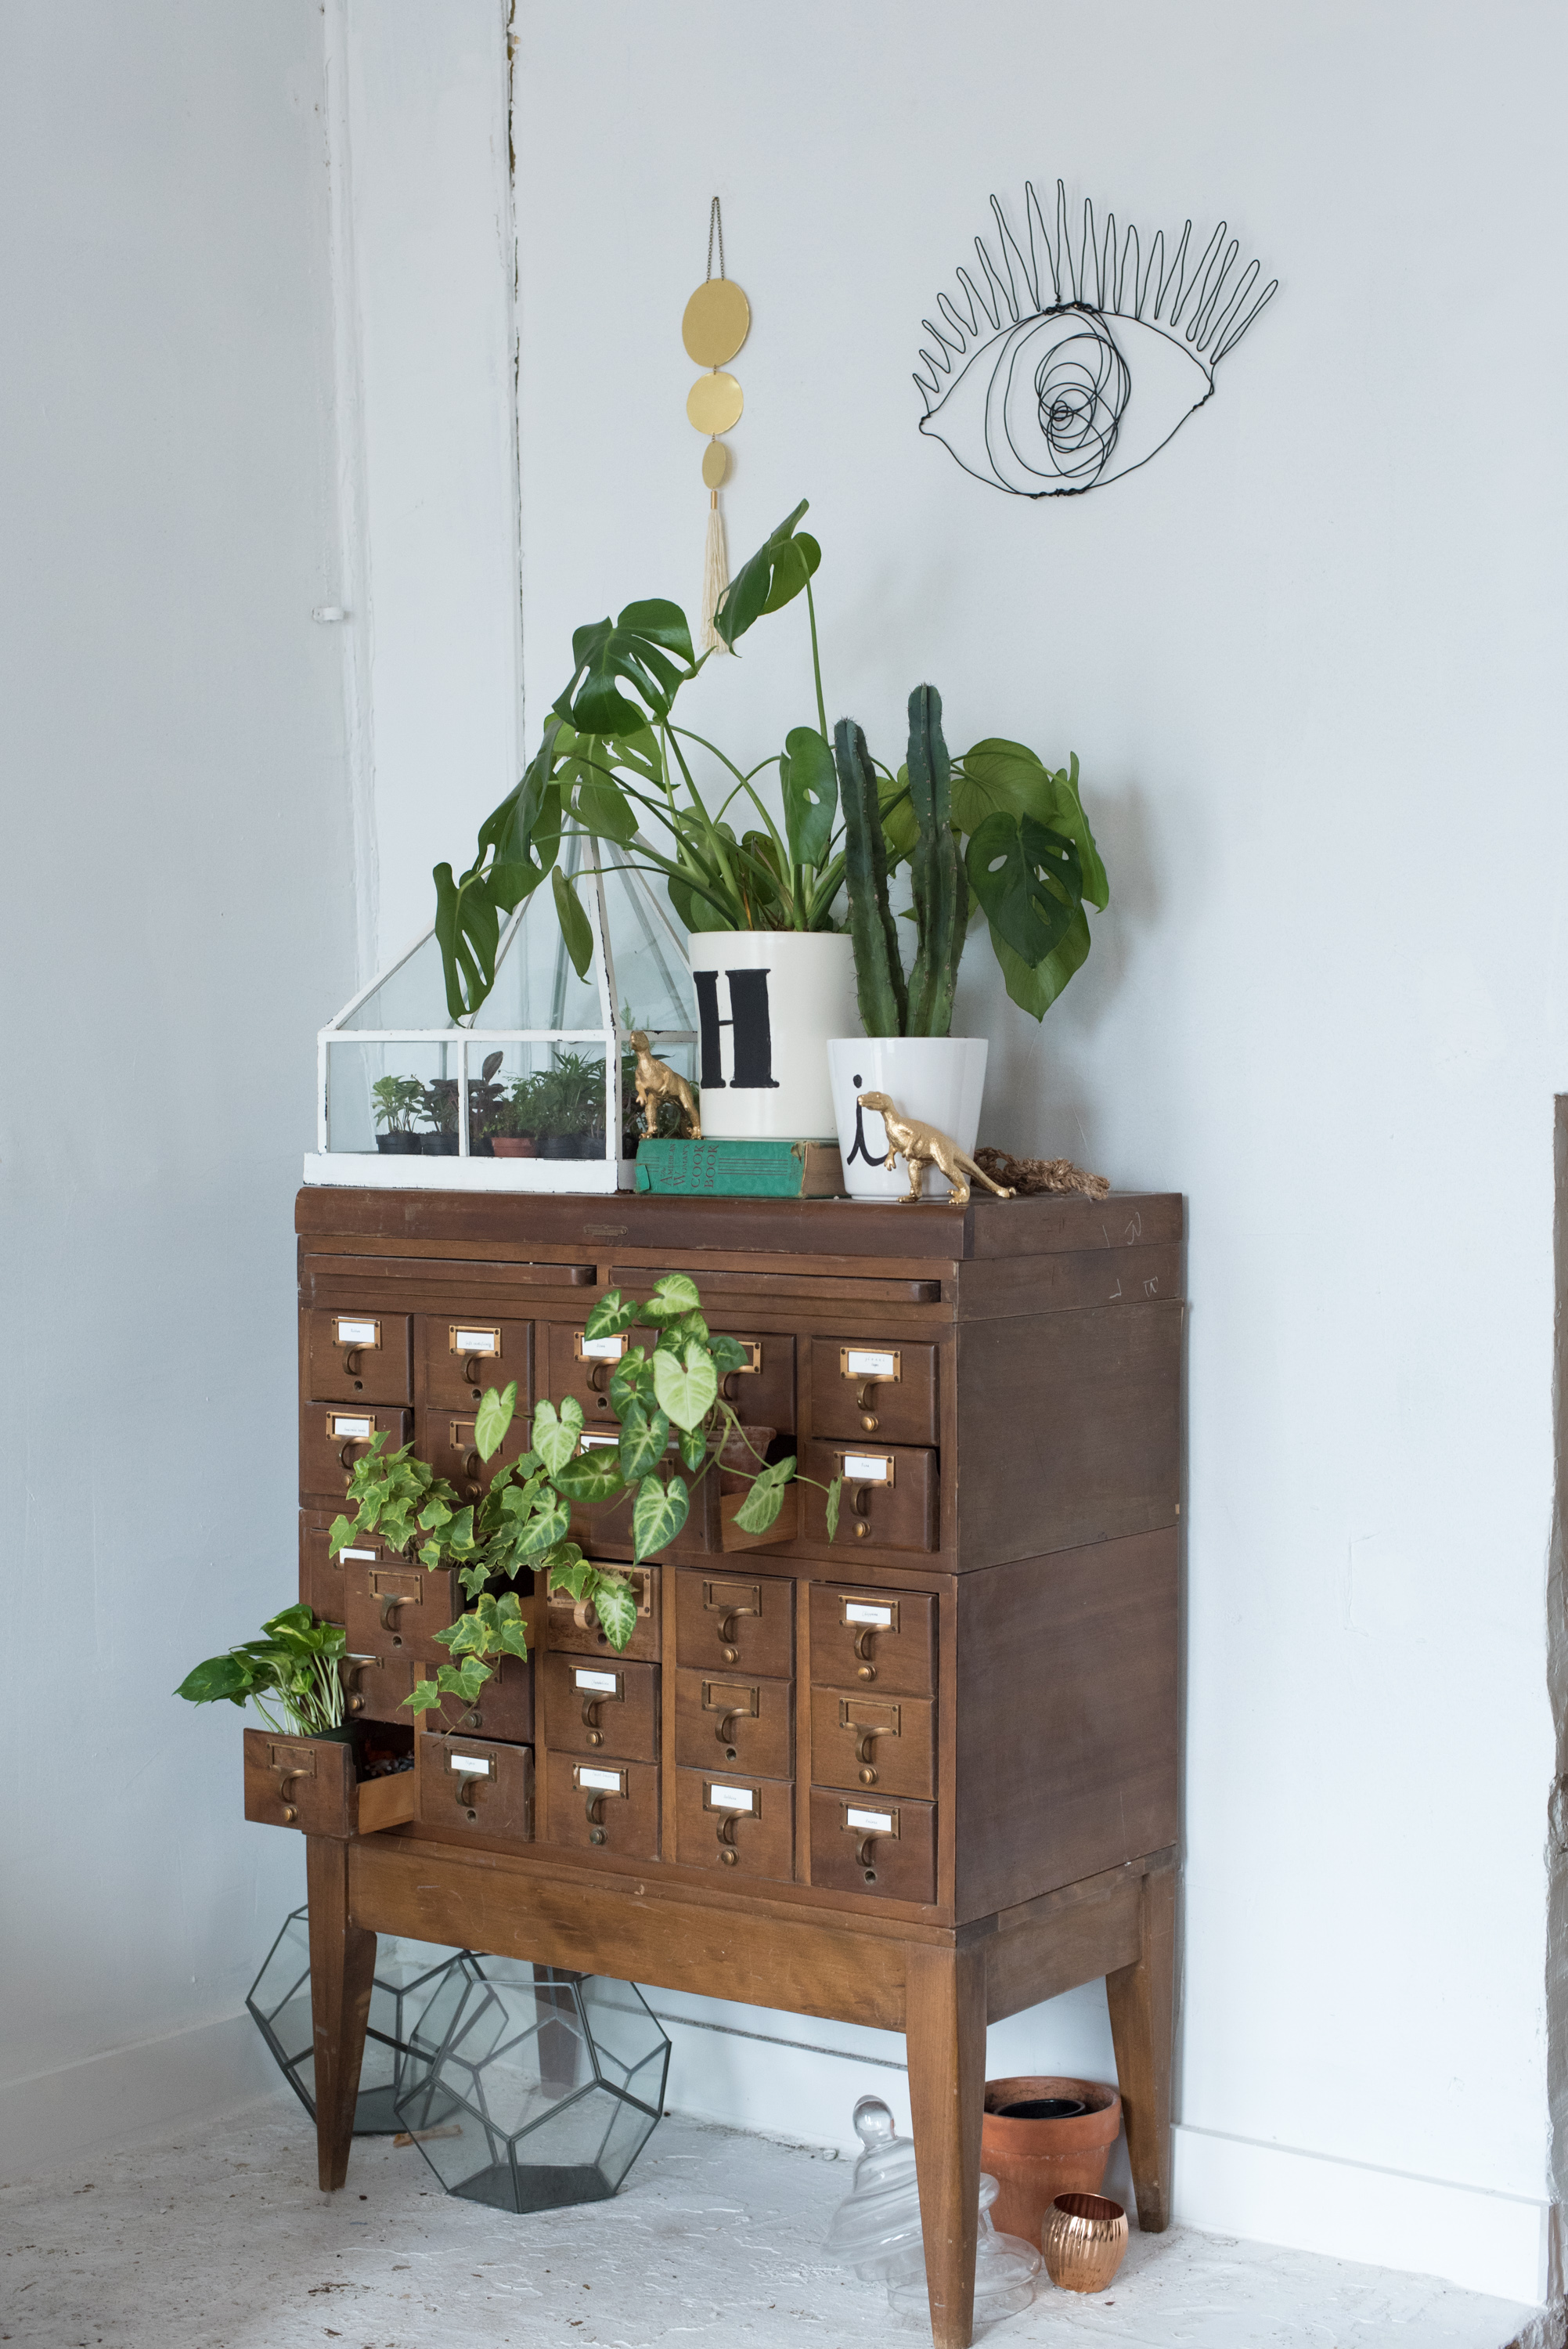 Lettered plant pots greet visitors on top of a card-catalog-cum-greenery-dispenser.